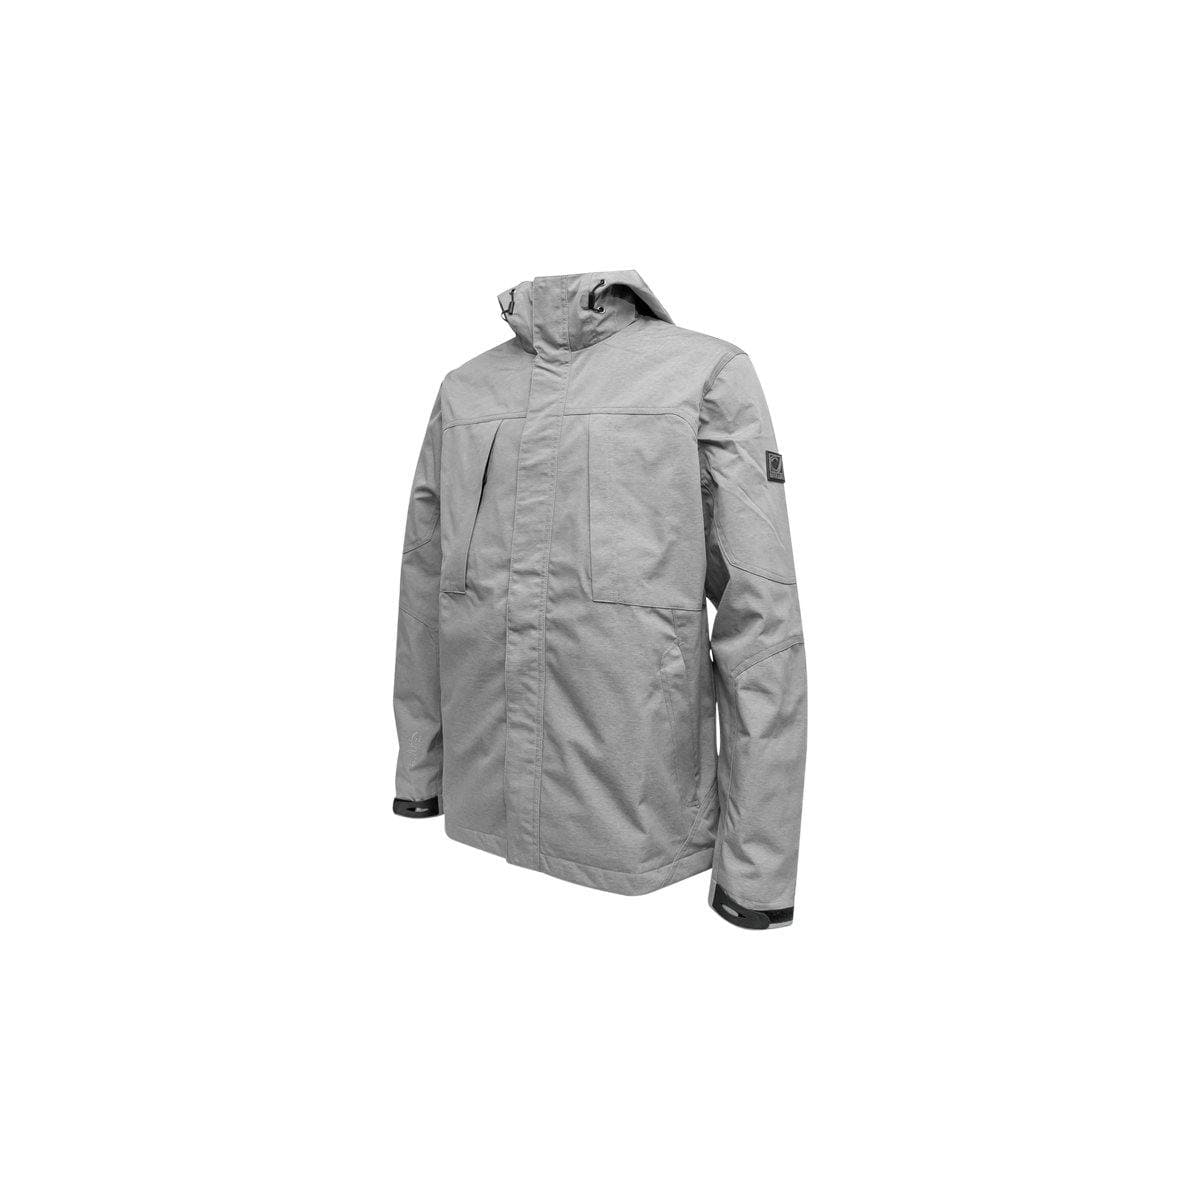 Reel Life Men's Submariner Jacket - Reel Life